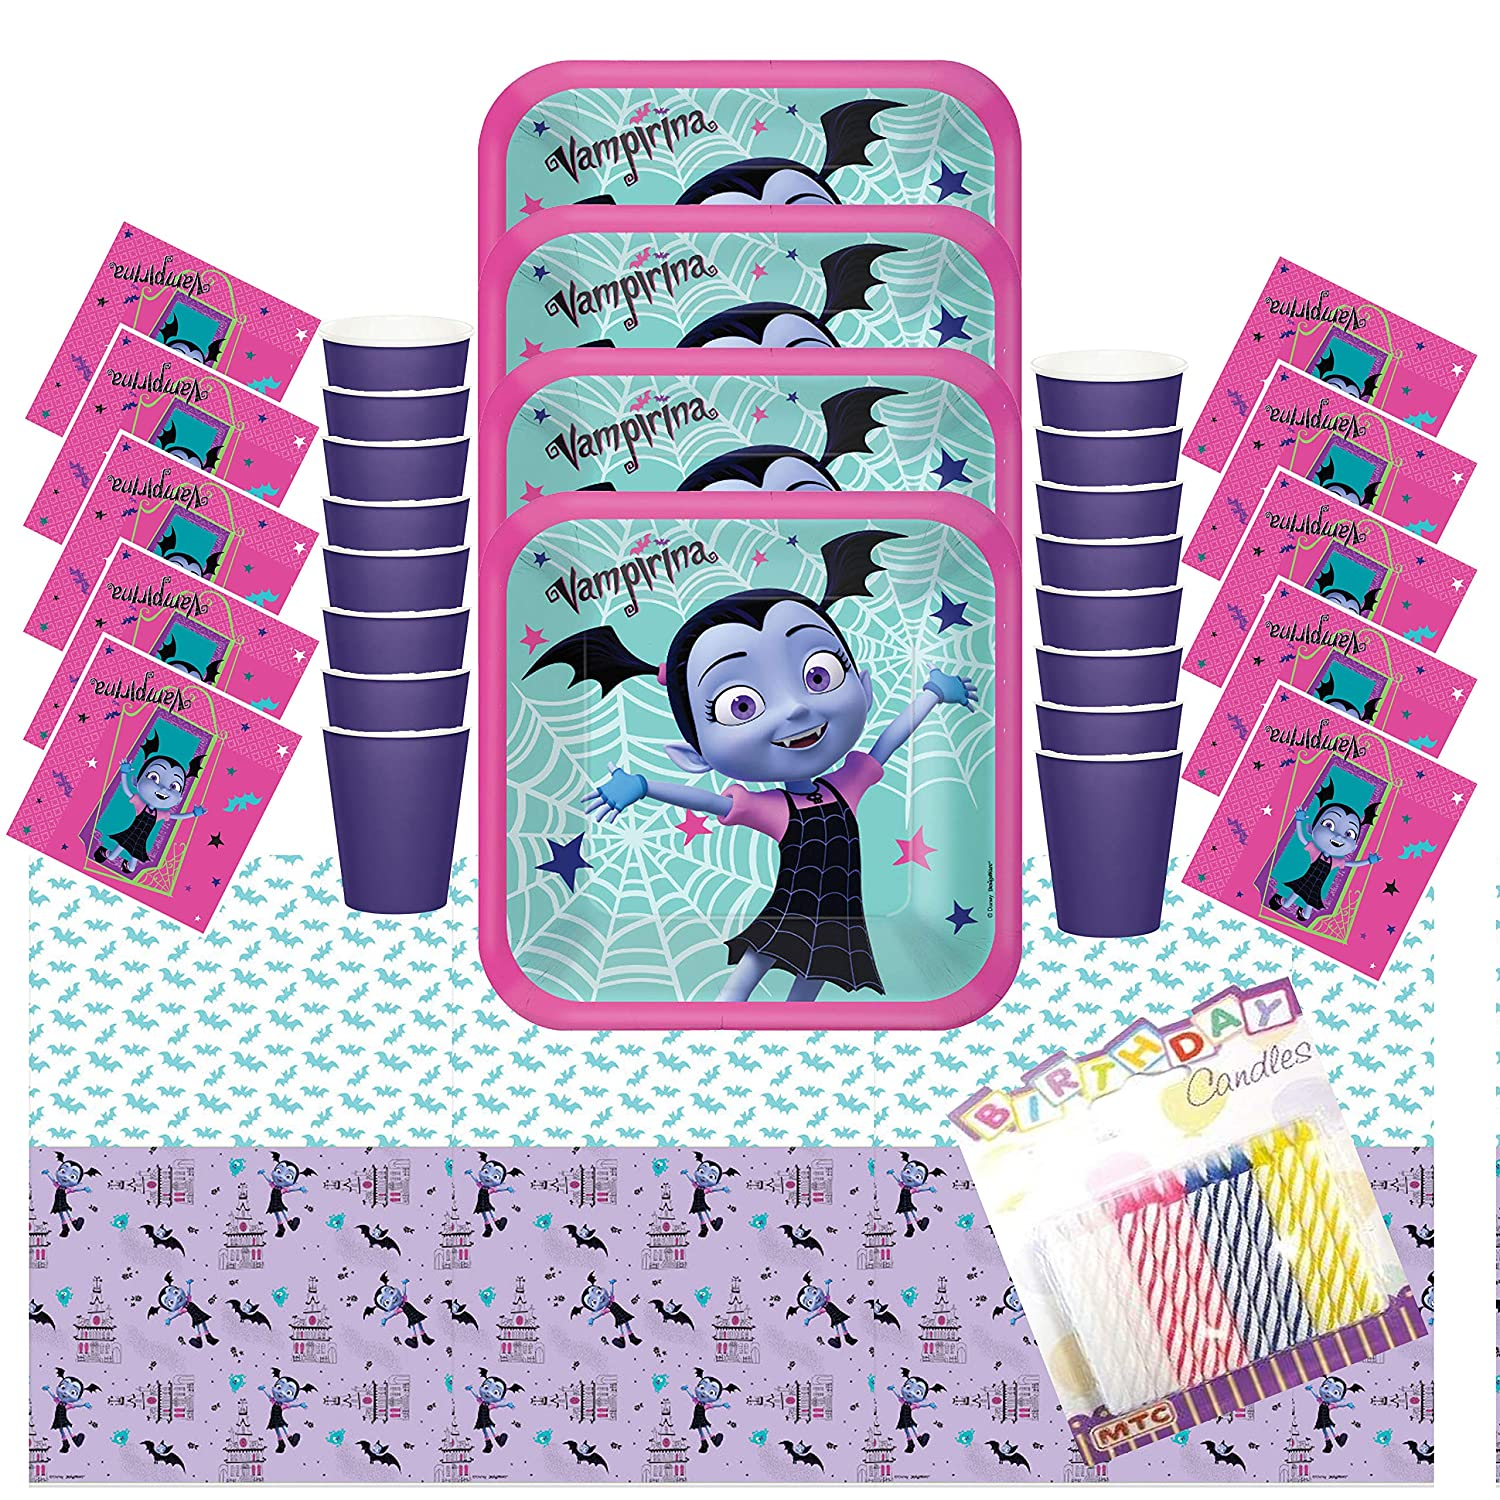 Disney Vampirina Party Plates Napkins Cups and Table Cover (Serves-16) with Birthday Candles - Disney Vampirina Party Supplies Pack Deluxe (Bundle for ...